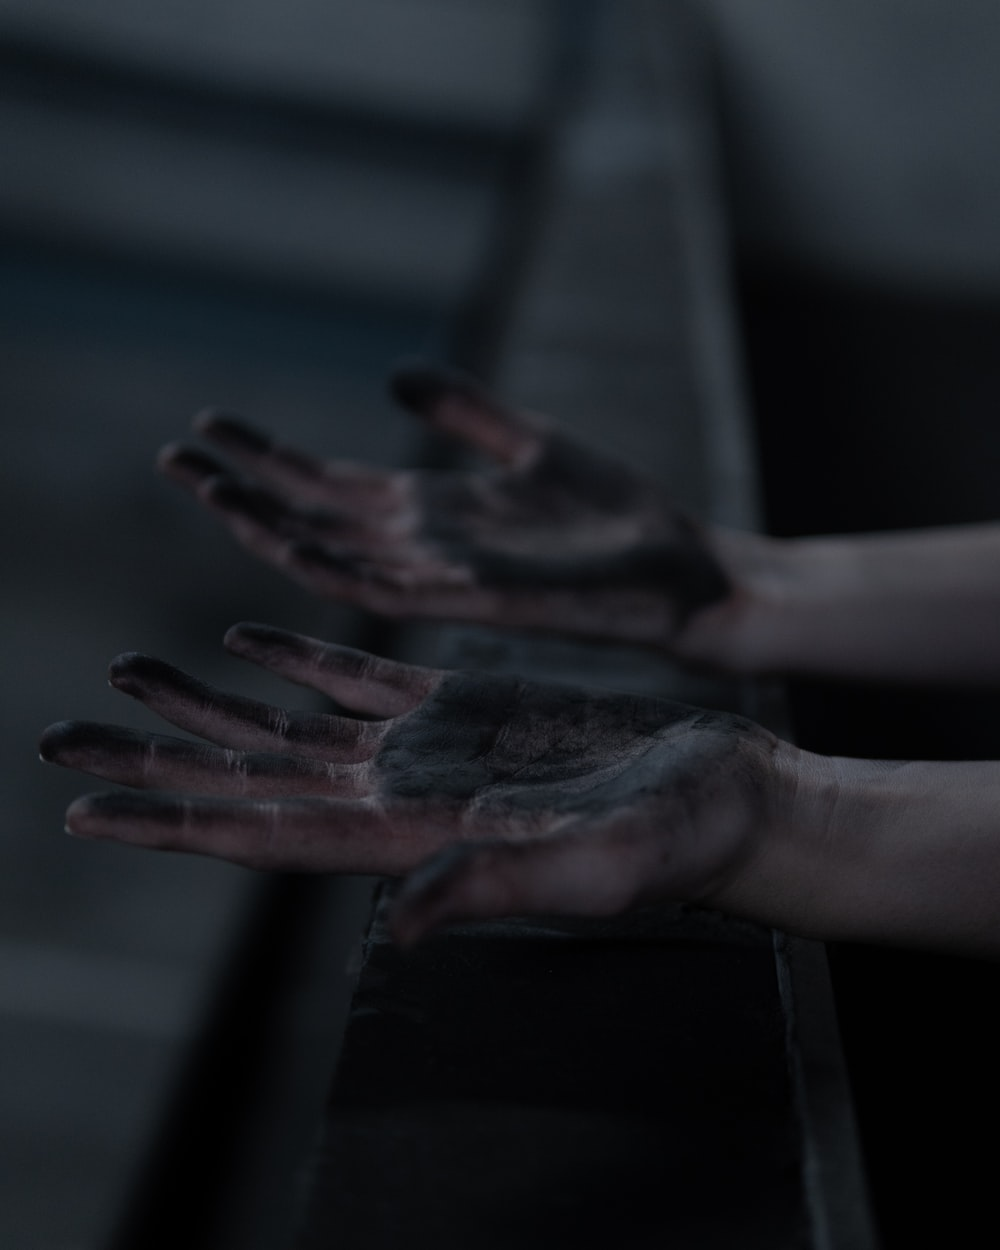 persons left hand with black paint